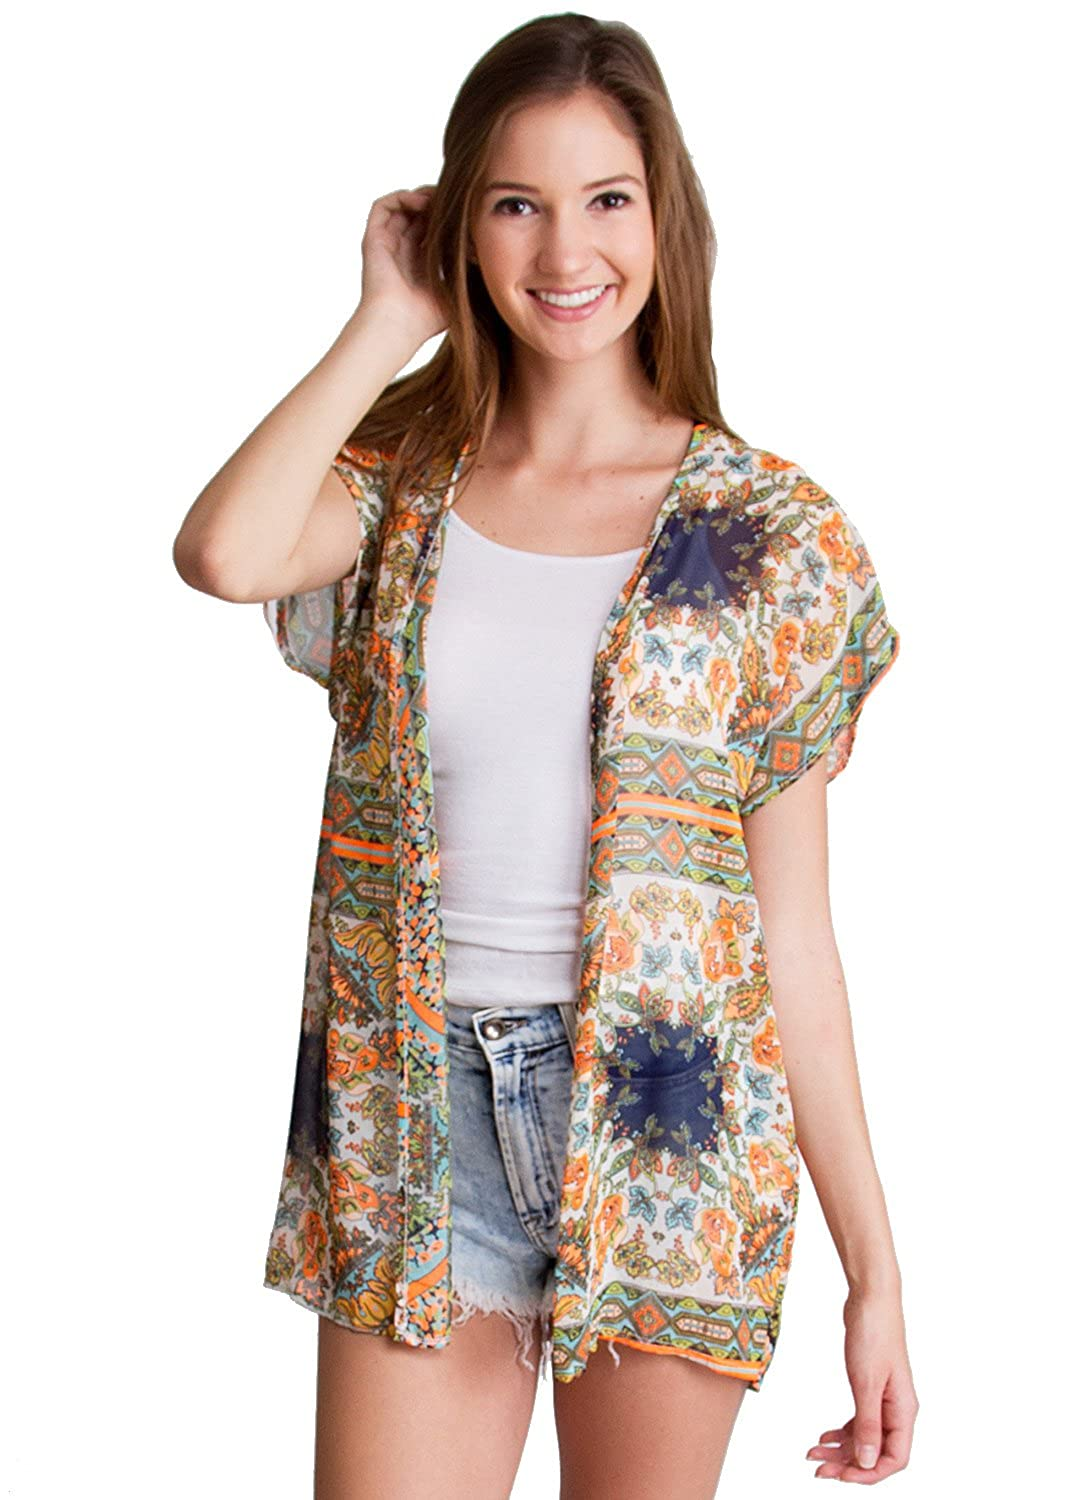 Woman Orange Floral Motif Short Sleeve Light Sheer Cardigan